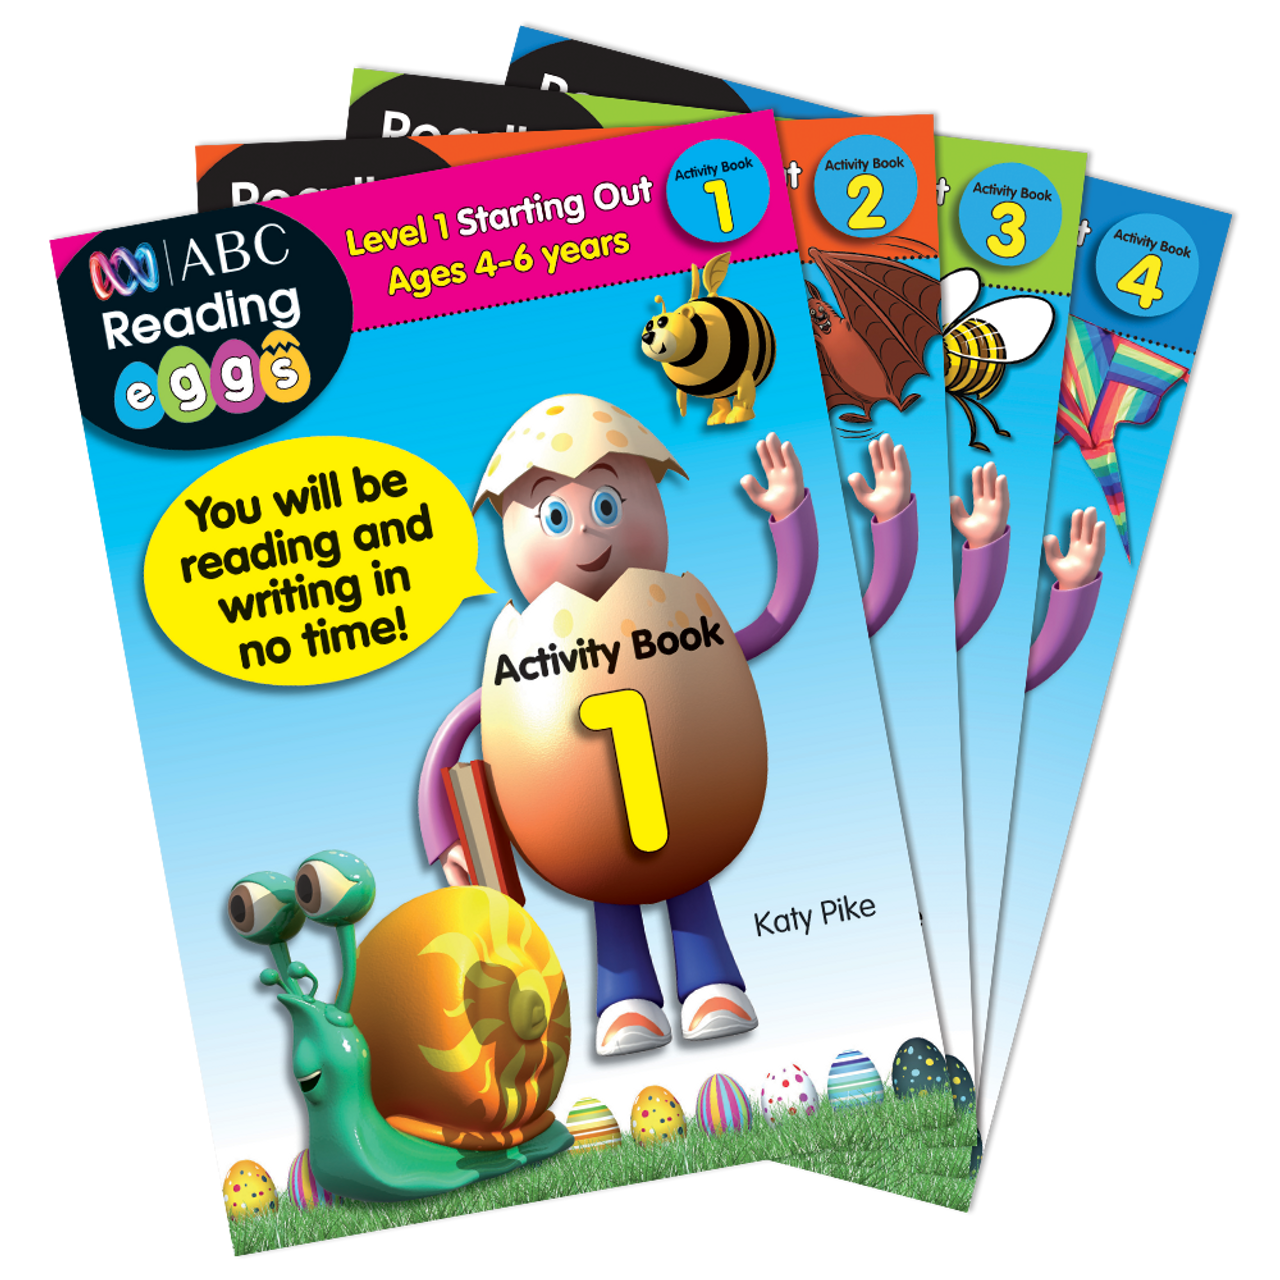 Activity Book Sets